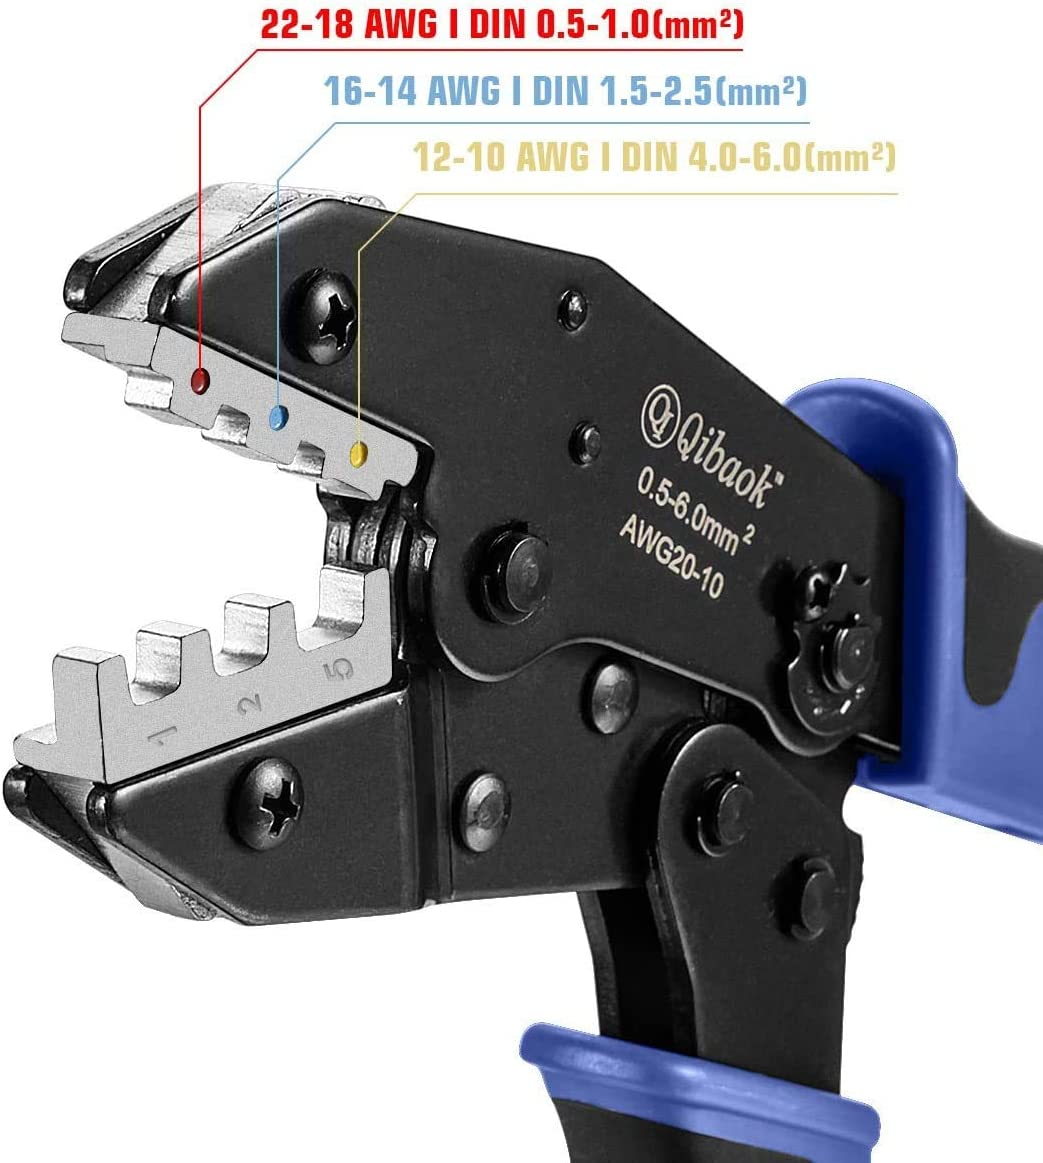 Qibaok Crimping Tool Ratcheting Wire Crimper for Heat Shrink Connectors with 200pcs Heat Shrink Butt Connectors for AWG 22-10